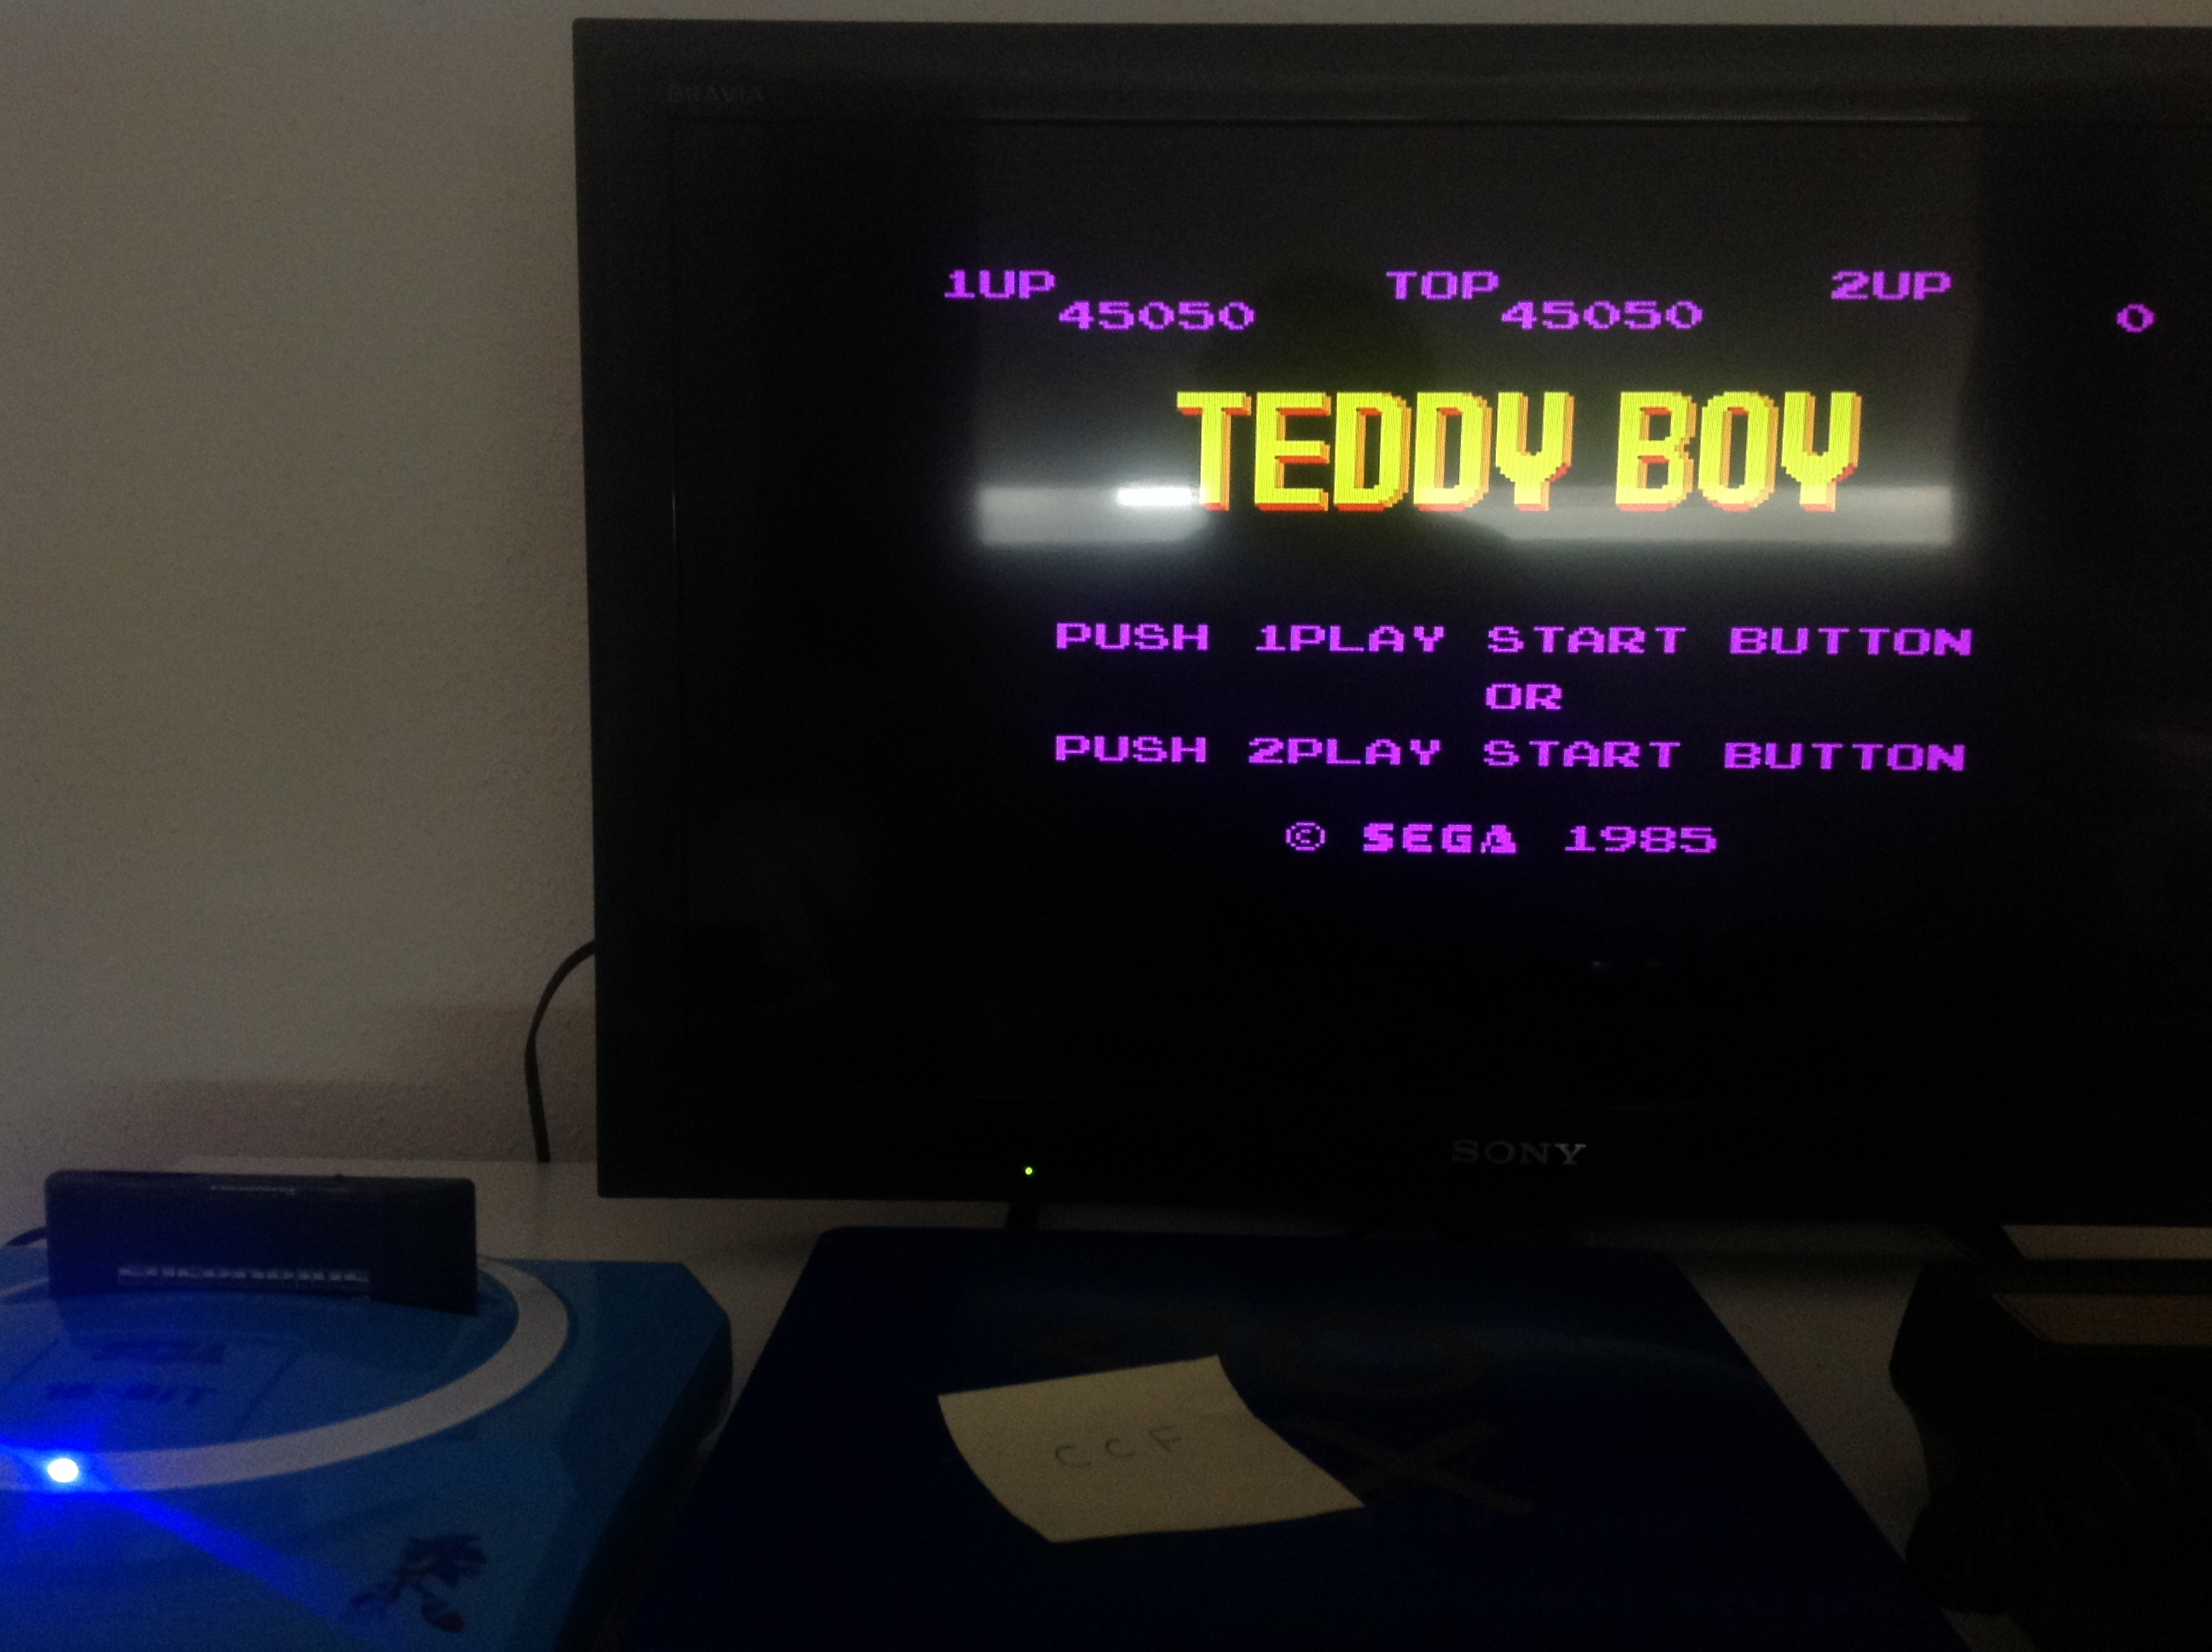 Teddy Boy 45,050 points